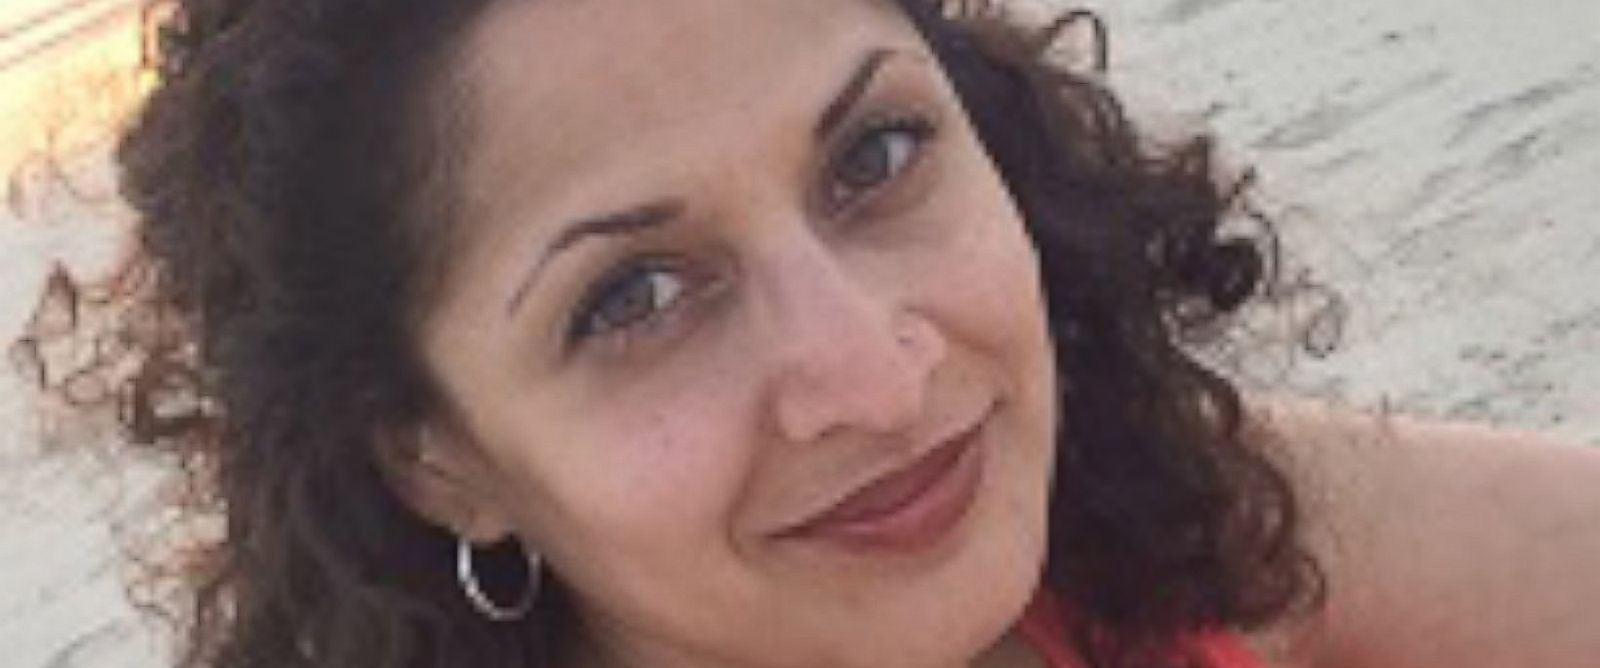 PHOTO: Anita Datar, 41, a U.S. citizen, was killed in an attack on the Radisson Blu Hotel in Bamako, Mali, on Nov. 20, 2015.